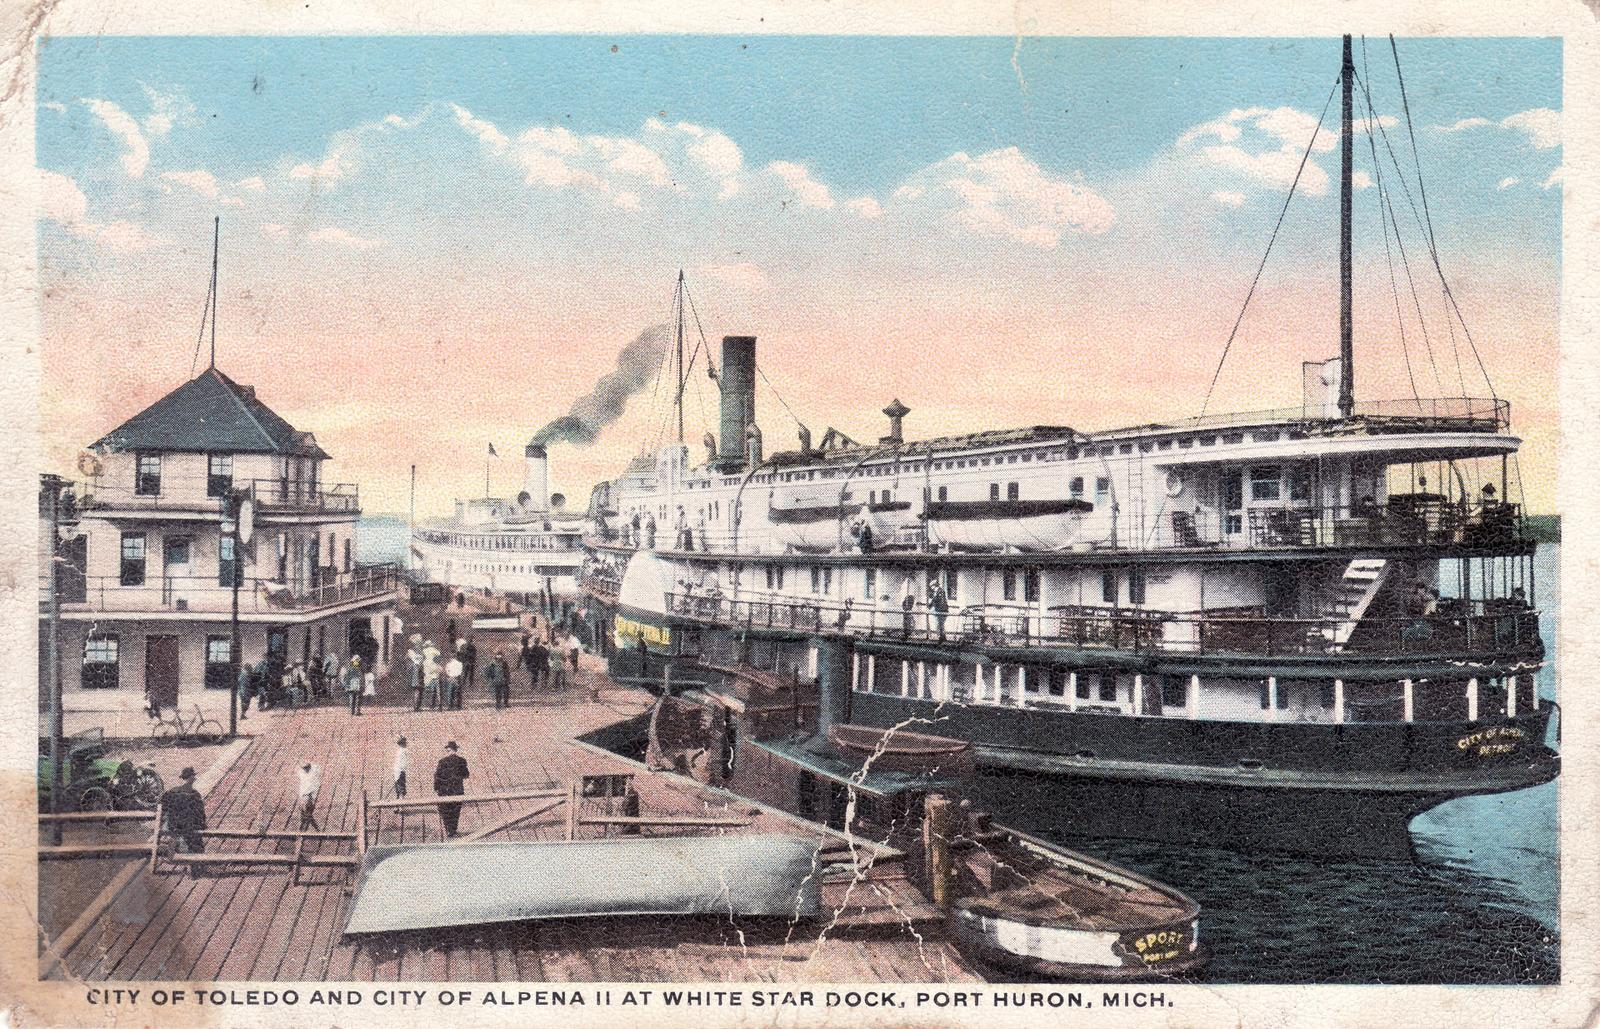 311 Steamers CITY OF TOLEDO and CITY OF ALPENA II